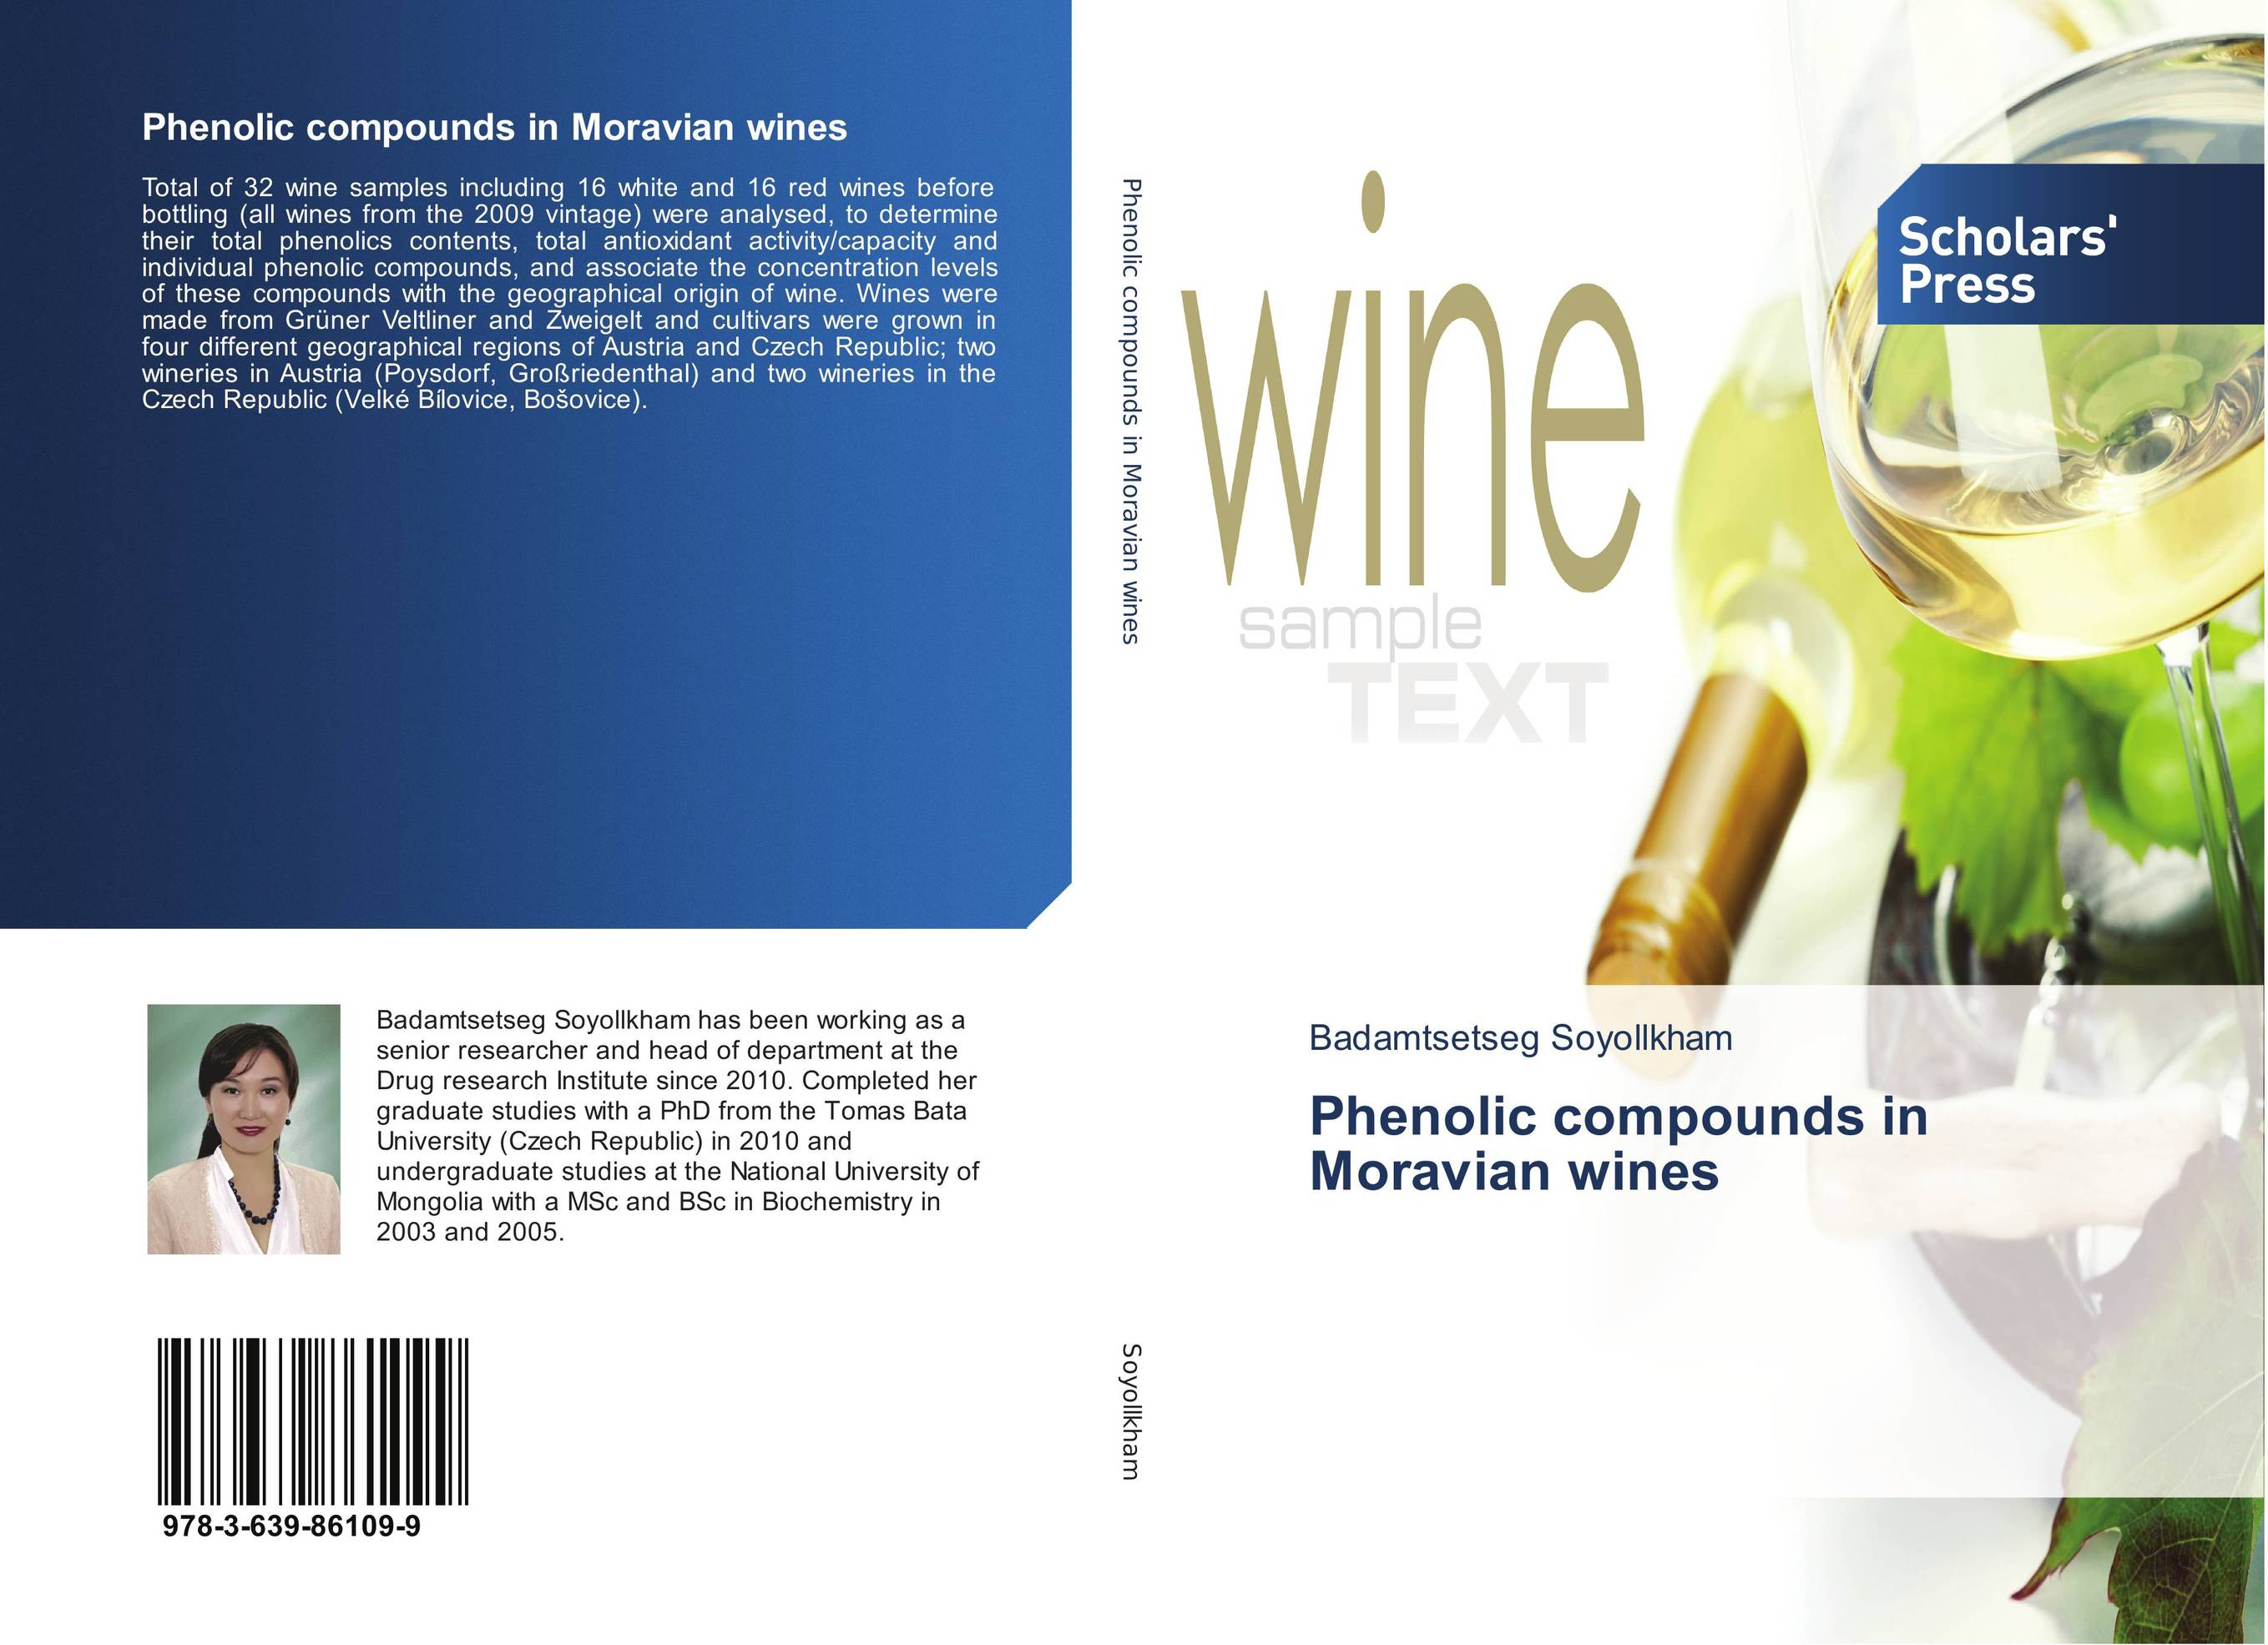 Phenolic compounds in Moravian wines the constitution of the republic of austria